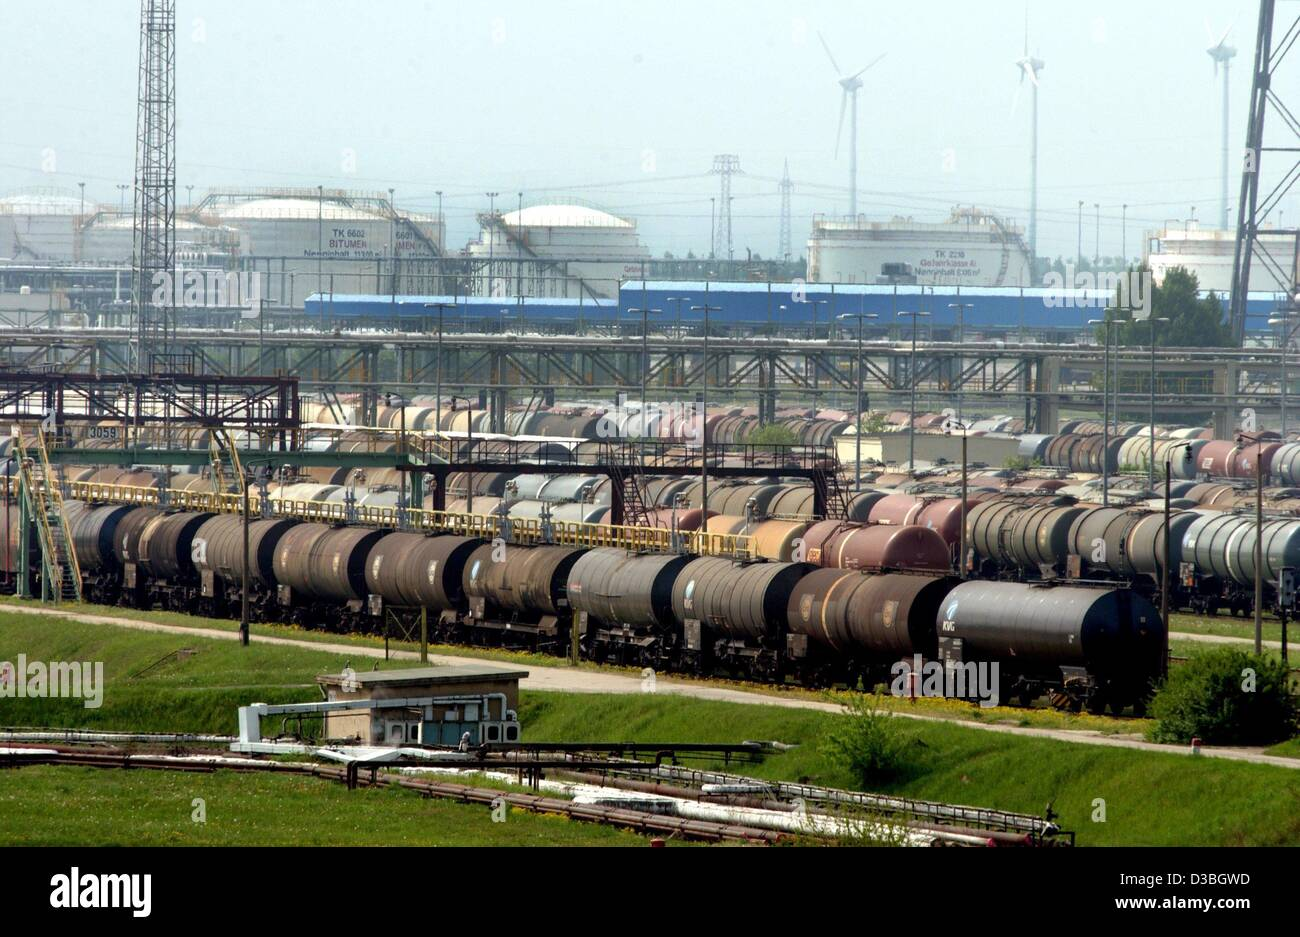 (dpa) - Waggons are ready for departure at the chemical site in Leuna, eastern Germany, 7 May 2003. Leuna, famous - Stock Image